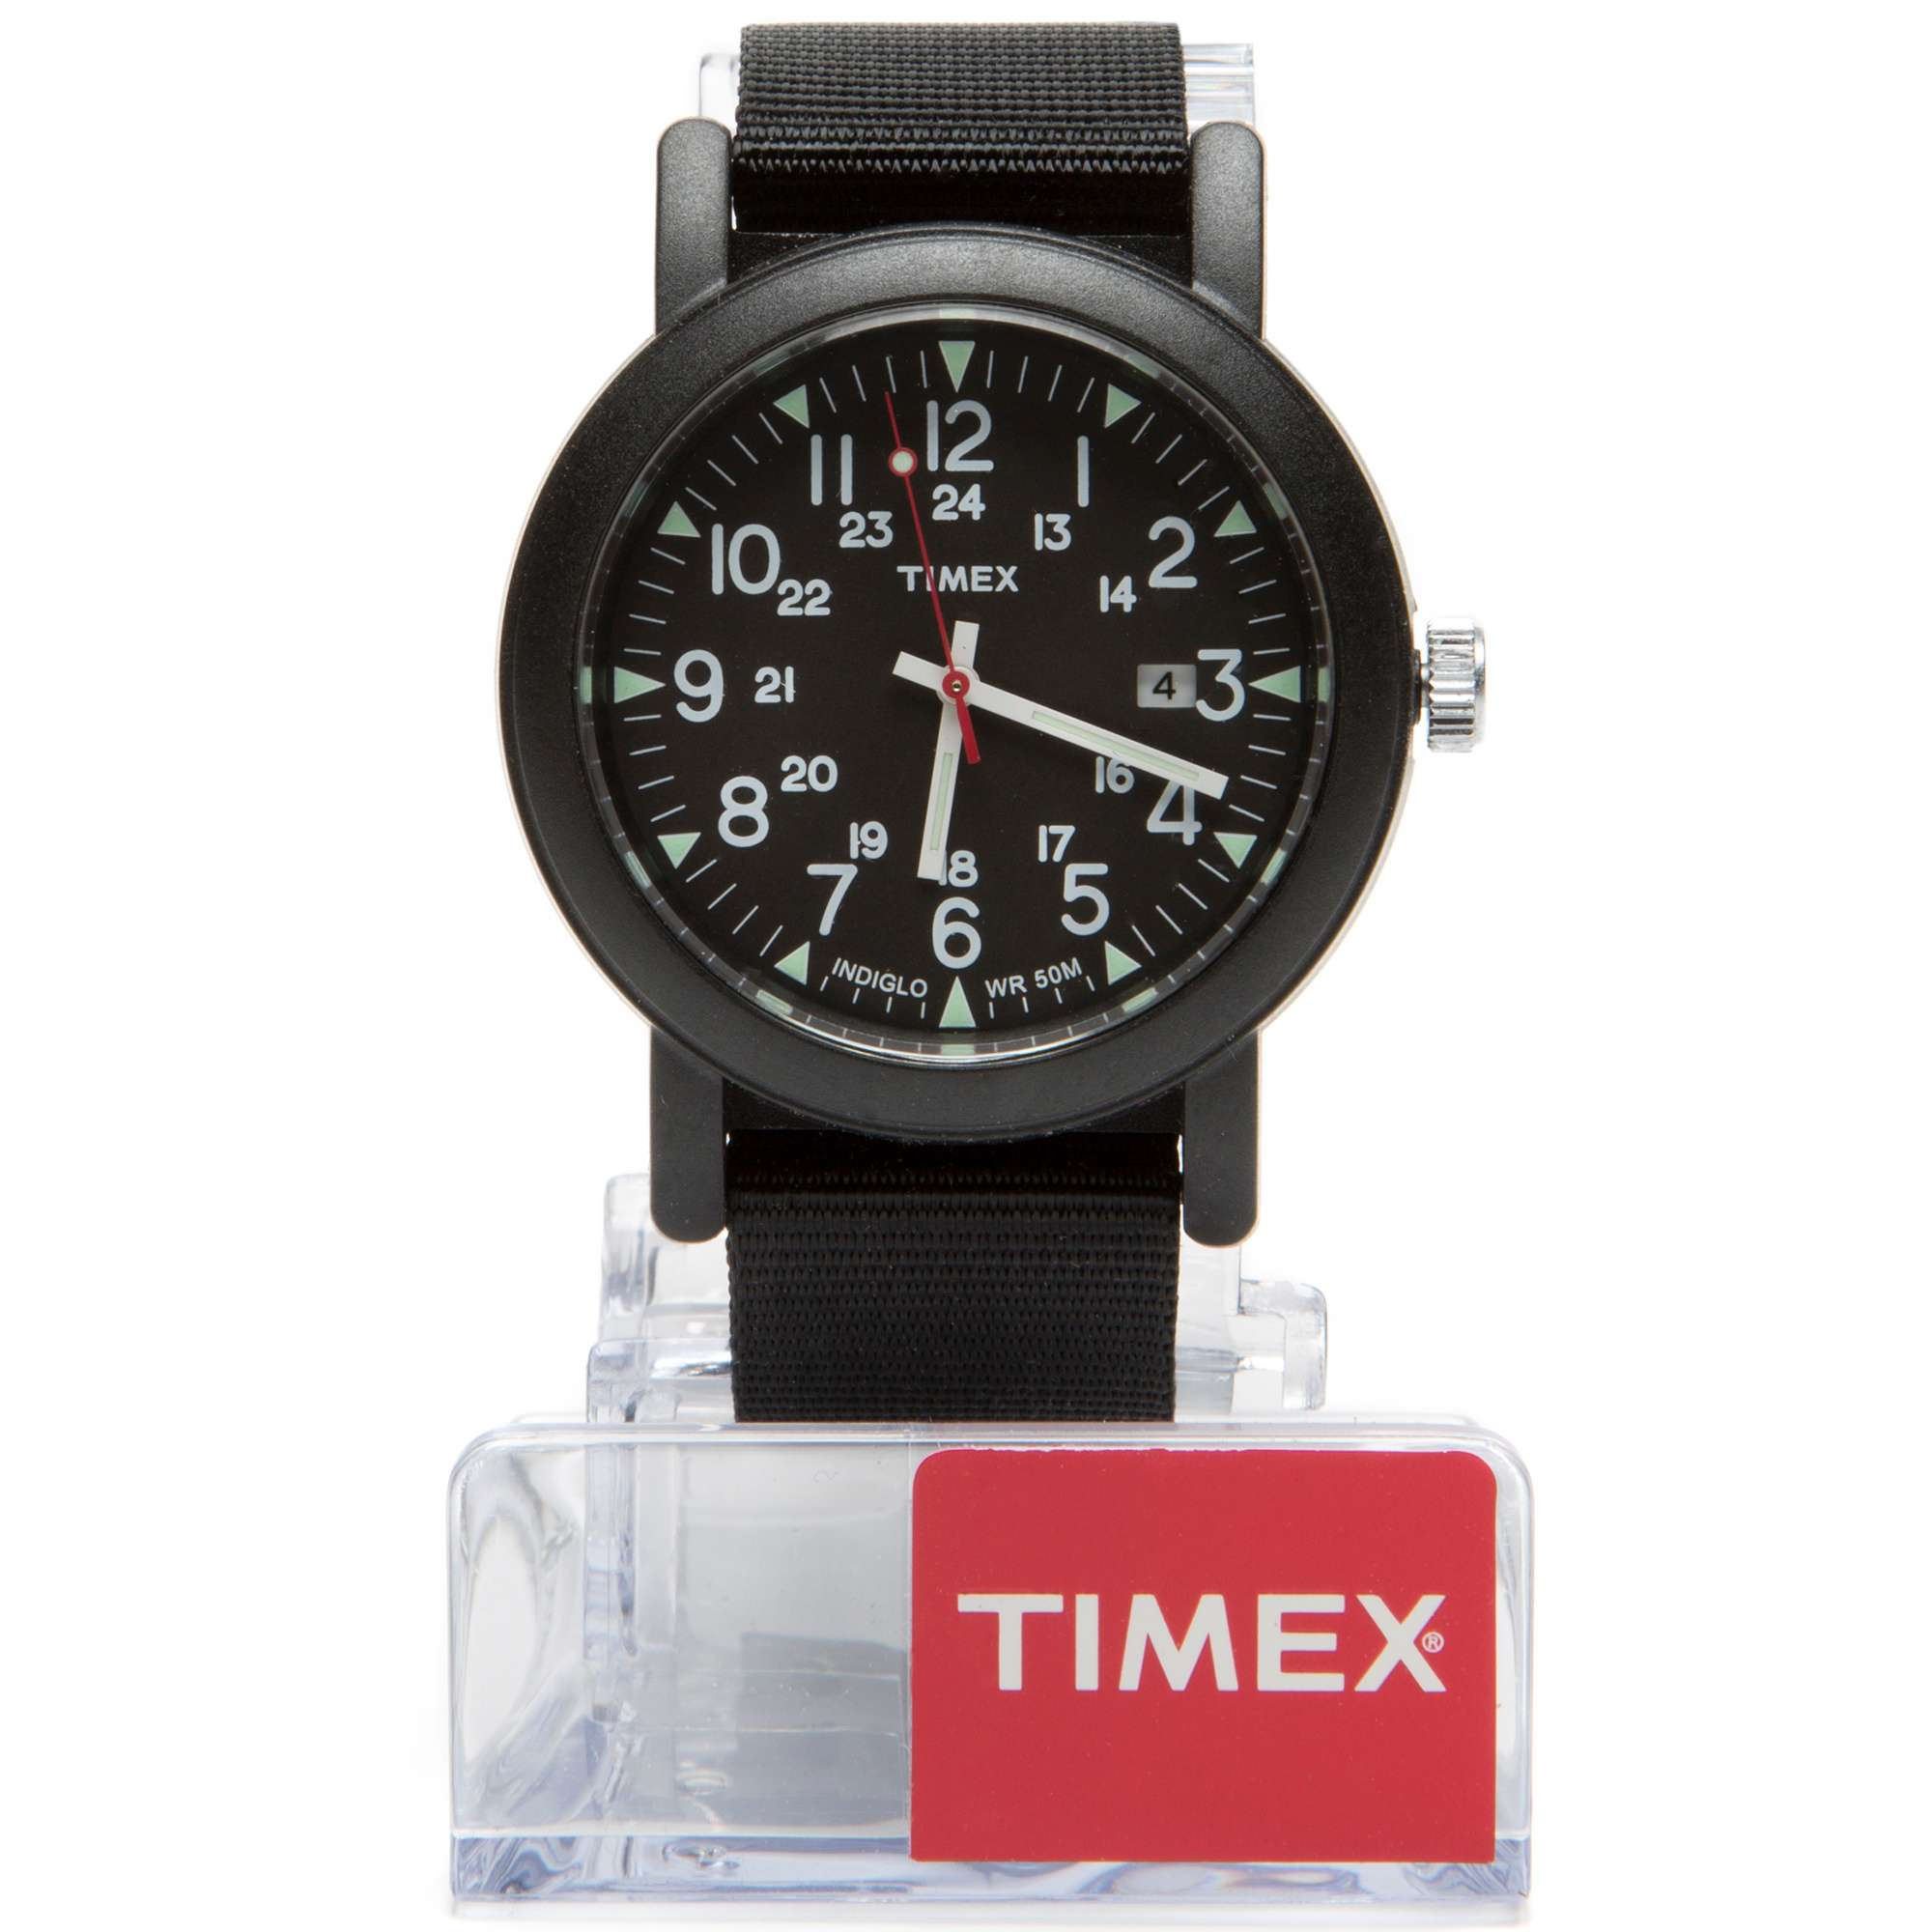 TIMEX Originals Camper Watch